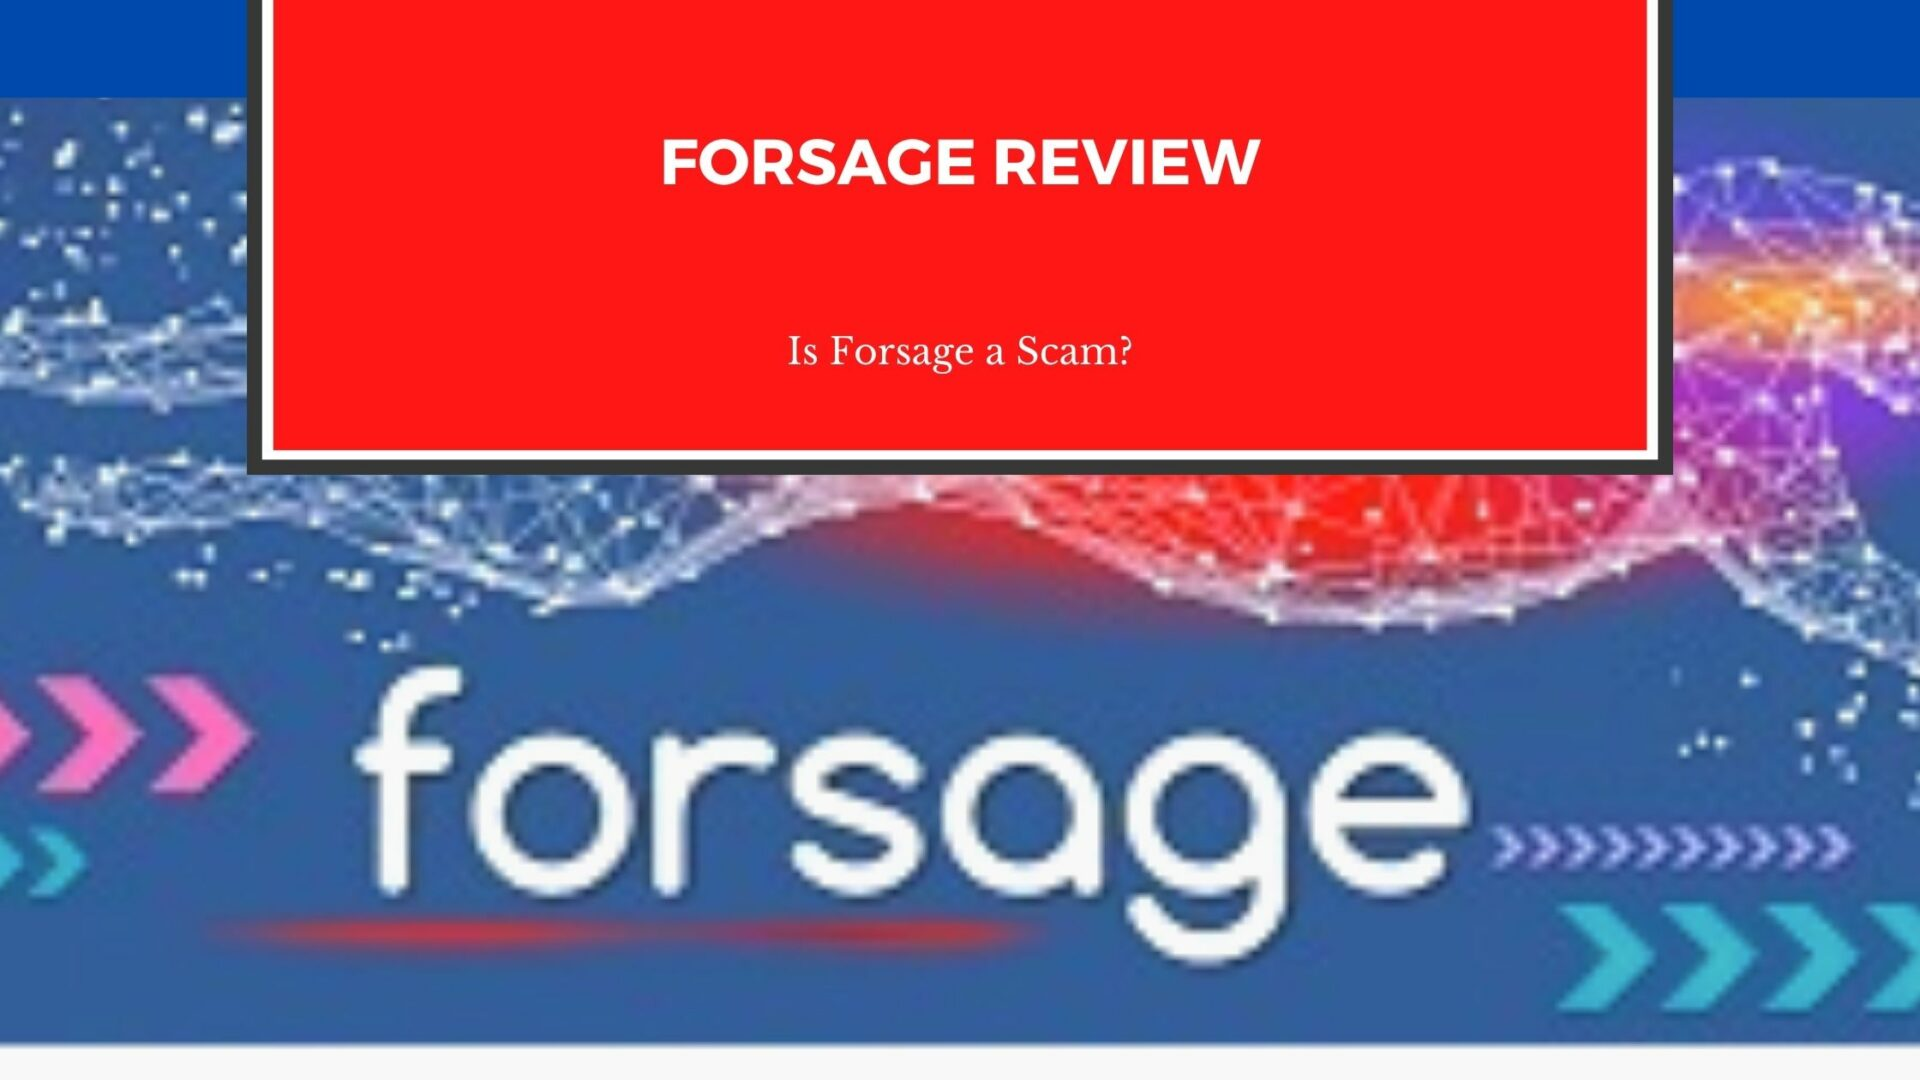 Forsage Review